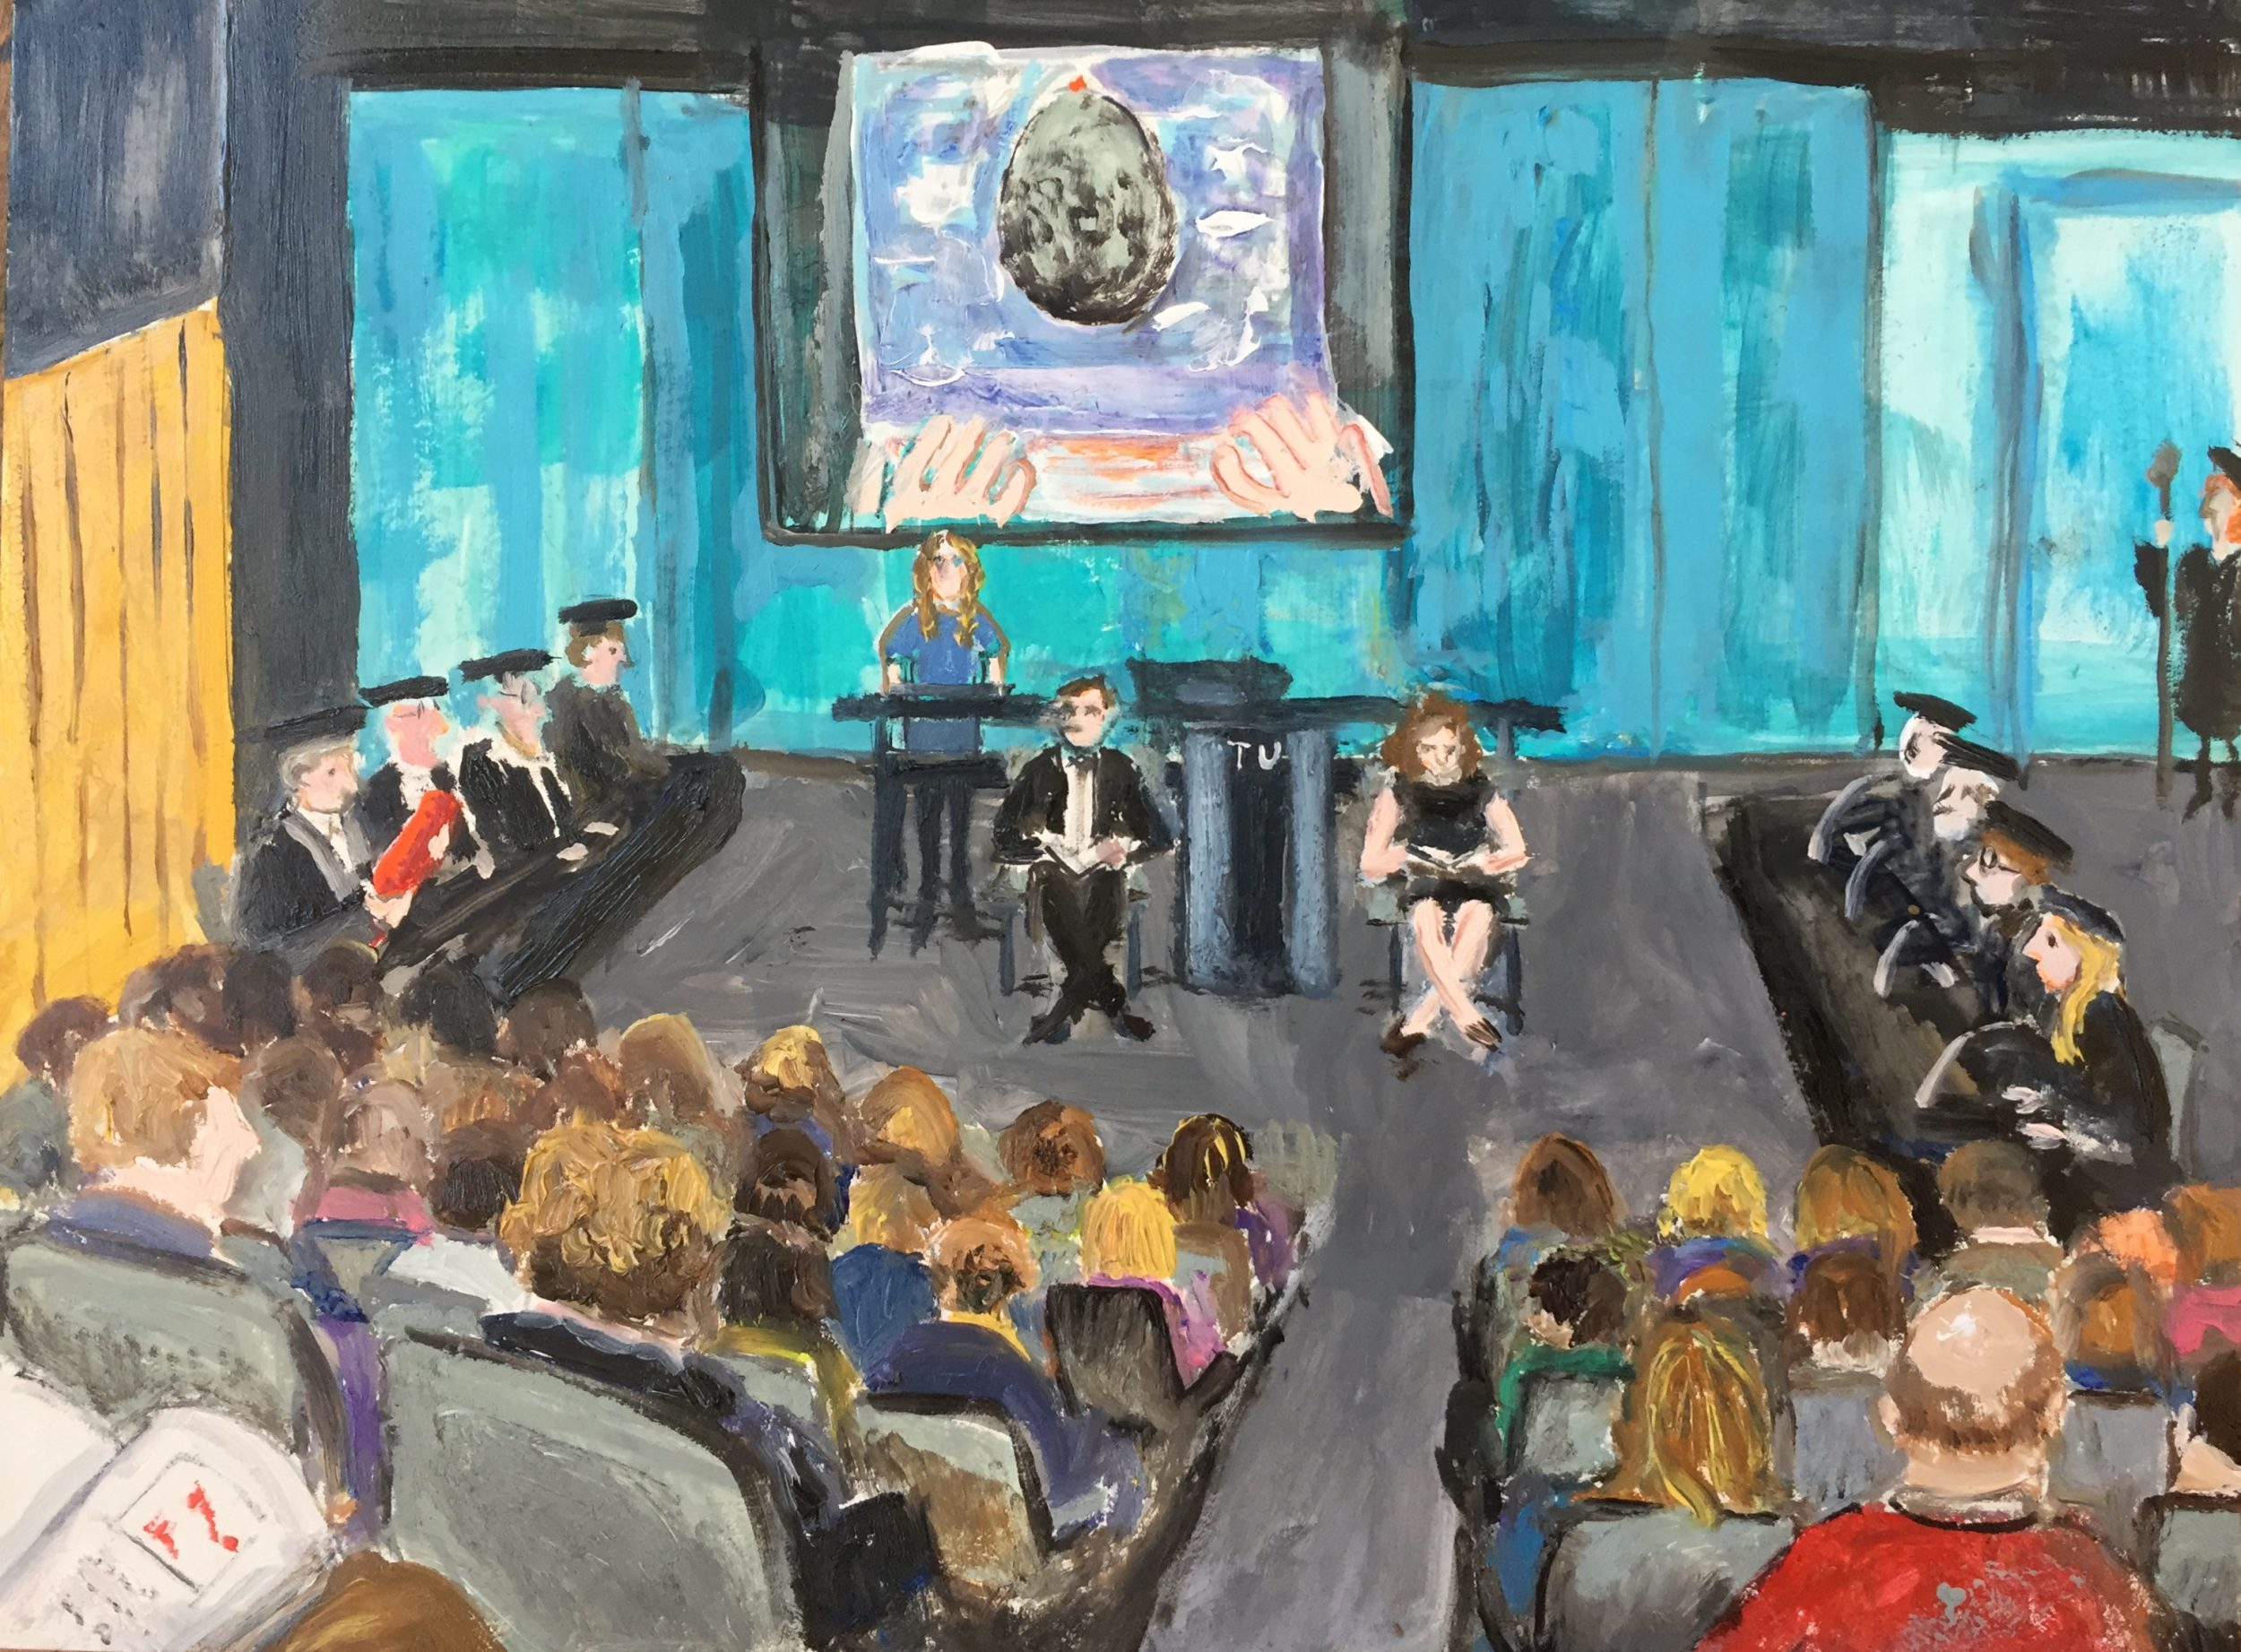 Commissioned work, Live Report of the defense of a doctoral thesis at Delft University